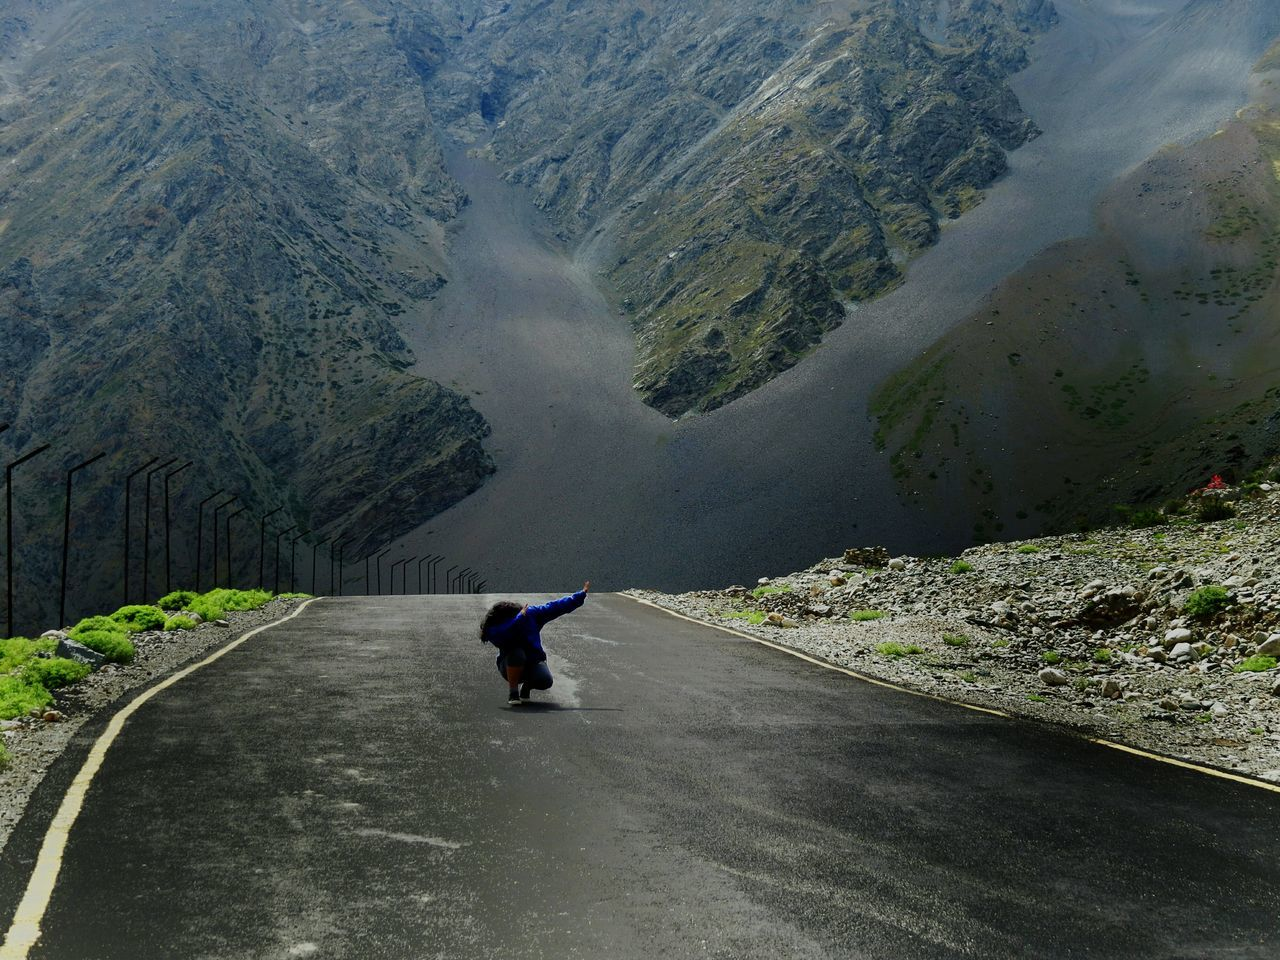 REAR VIEW OF WOMAN ON ROAD